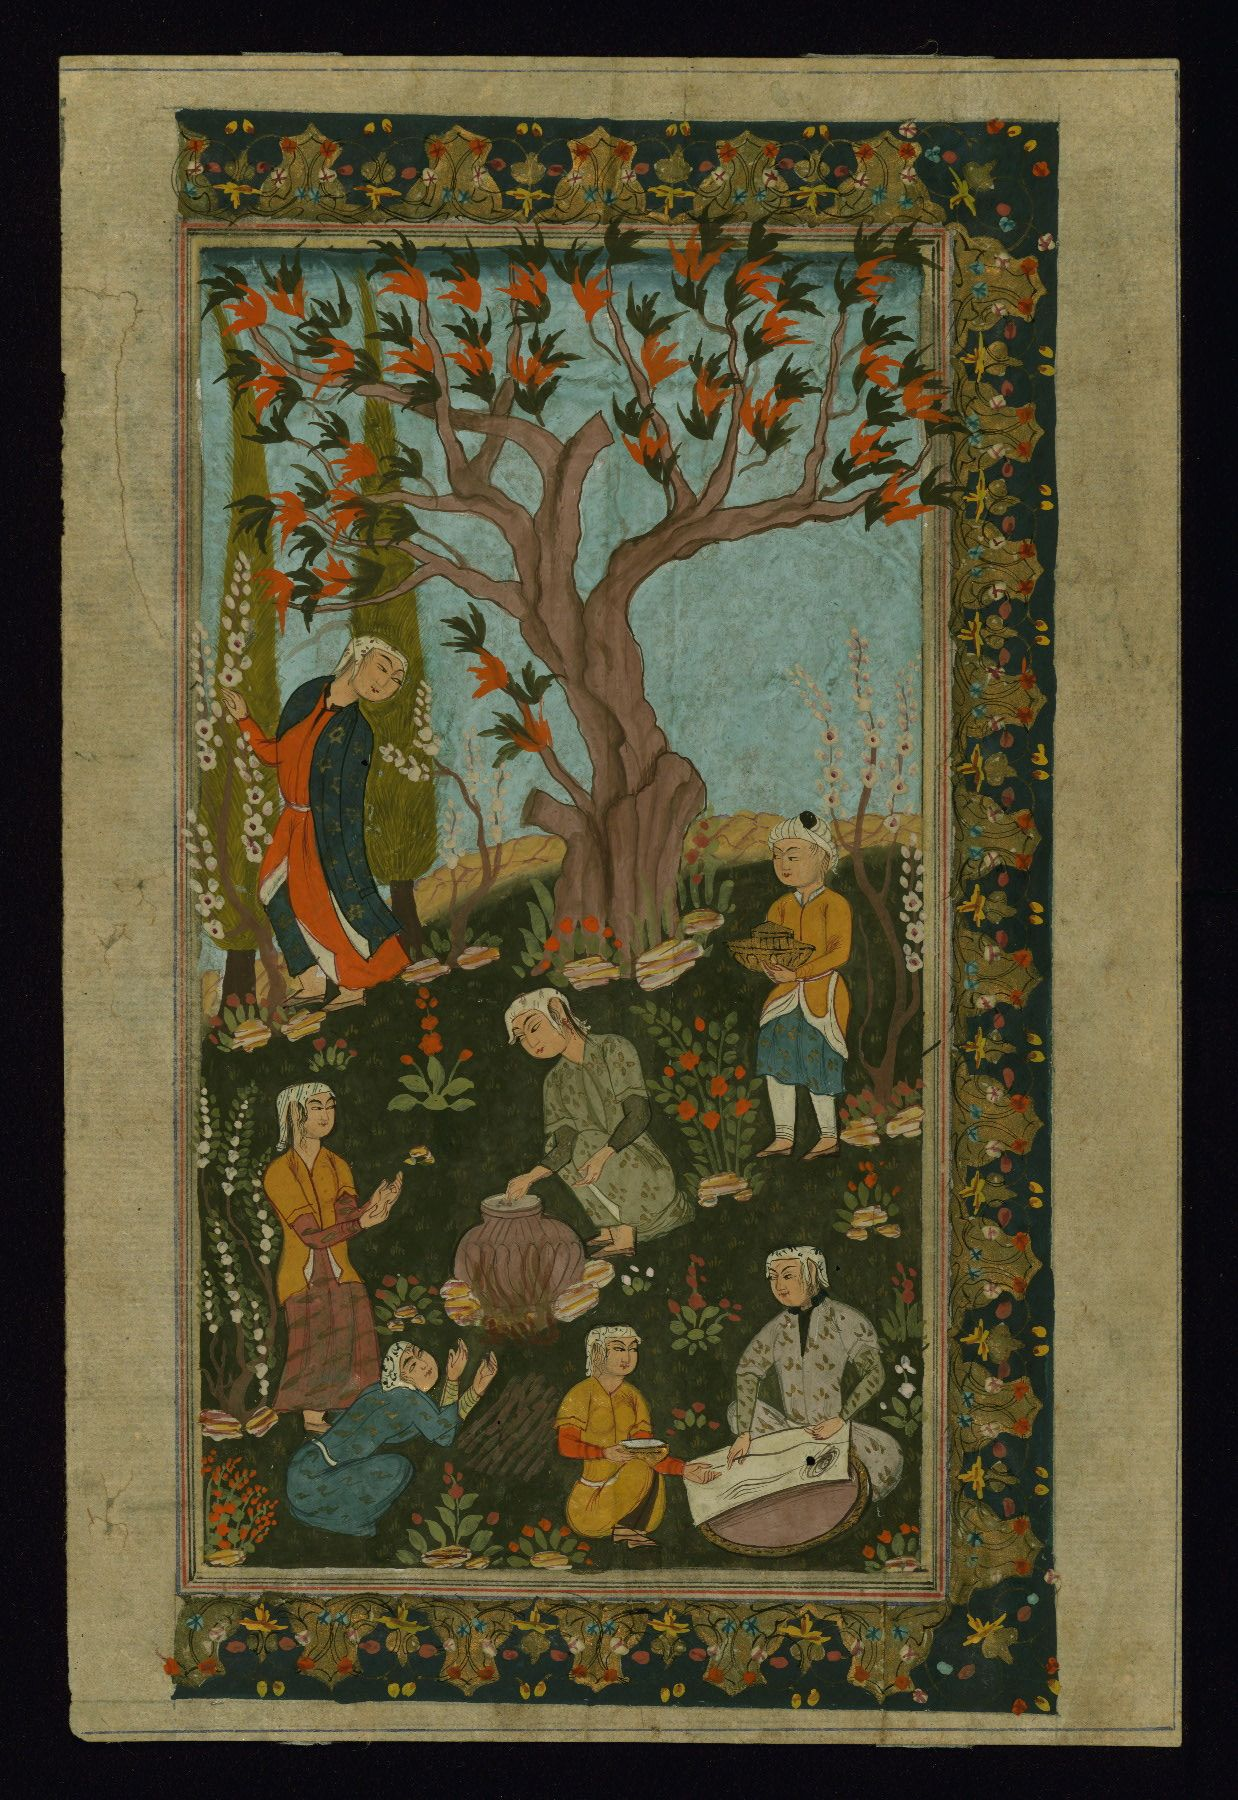 All sizes | Single leaf of an outdoor scene in the Safavid style, Outdoor scene in the Safavid style, Walters Manuscript W.812a | Flickr - Photo Sharing!